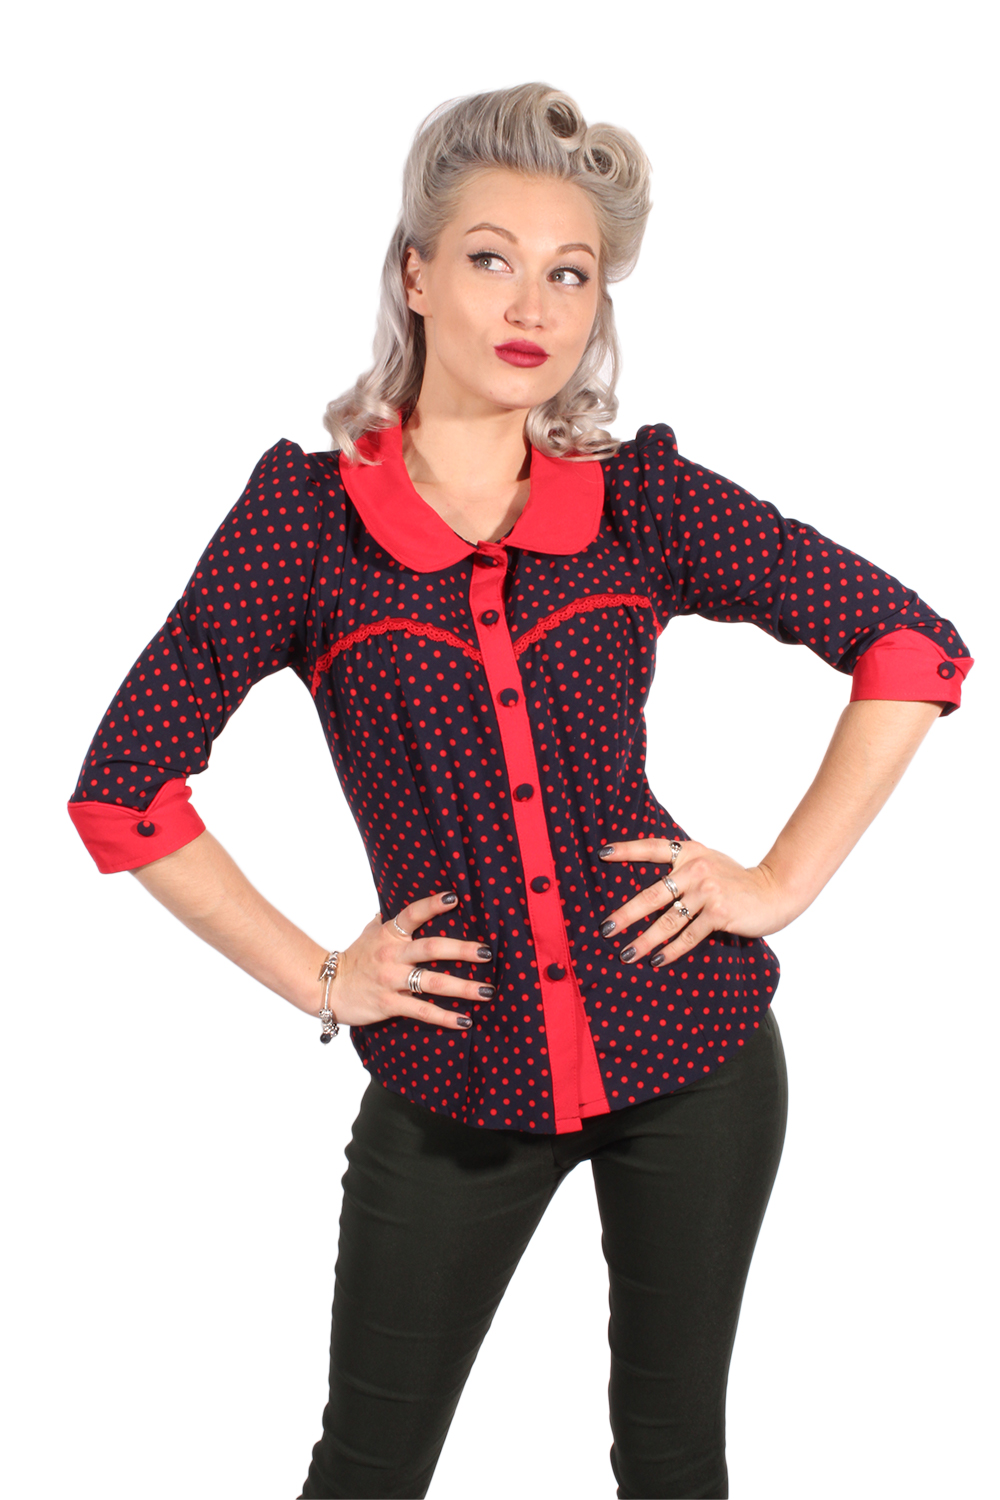 Fifties Polka Dots Rockabilly Puffärmel 3/4arm Bluse marineblau rot